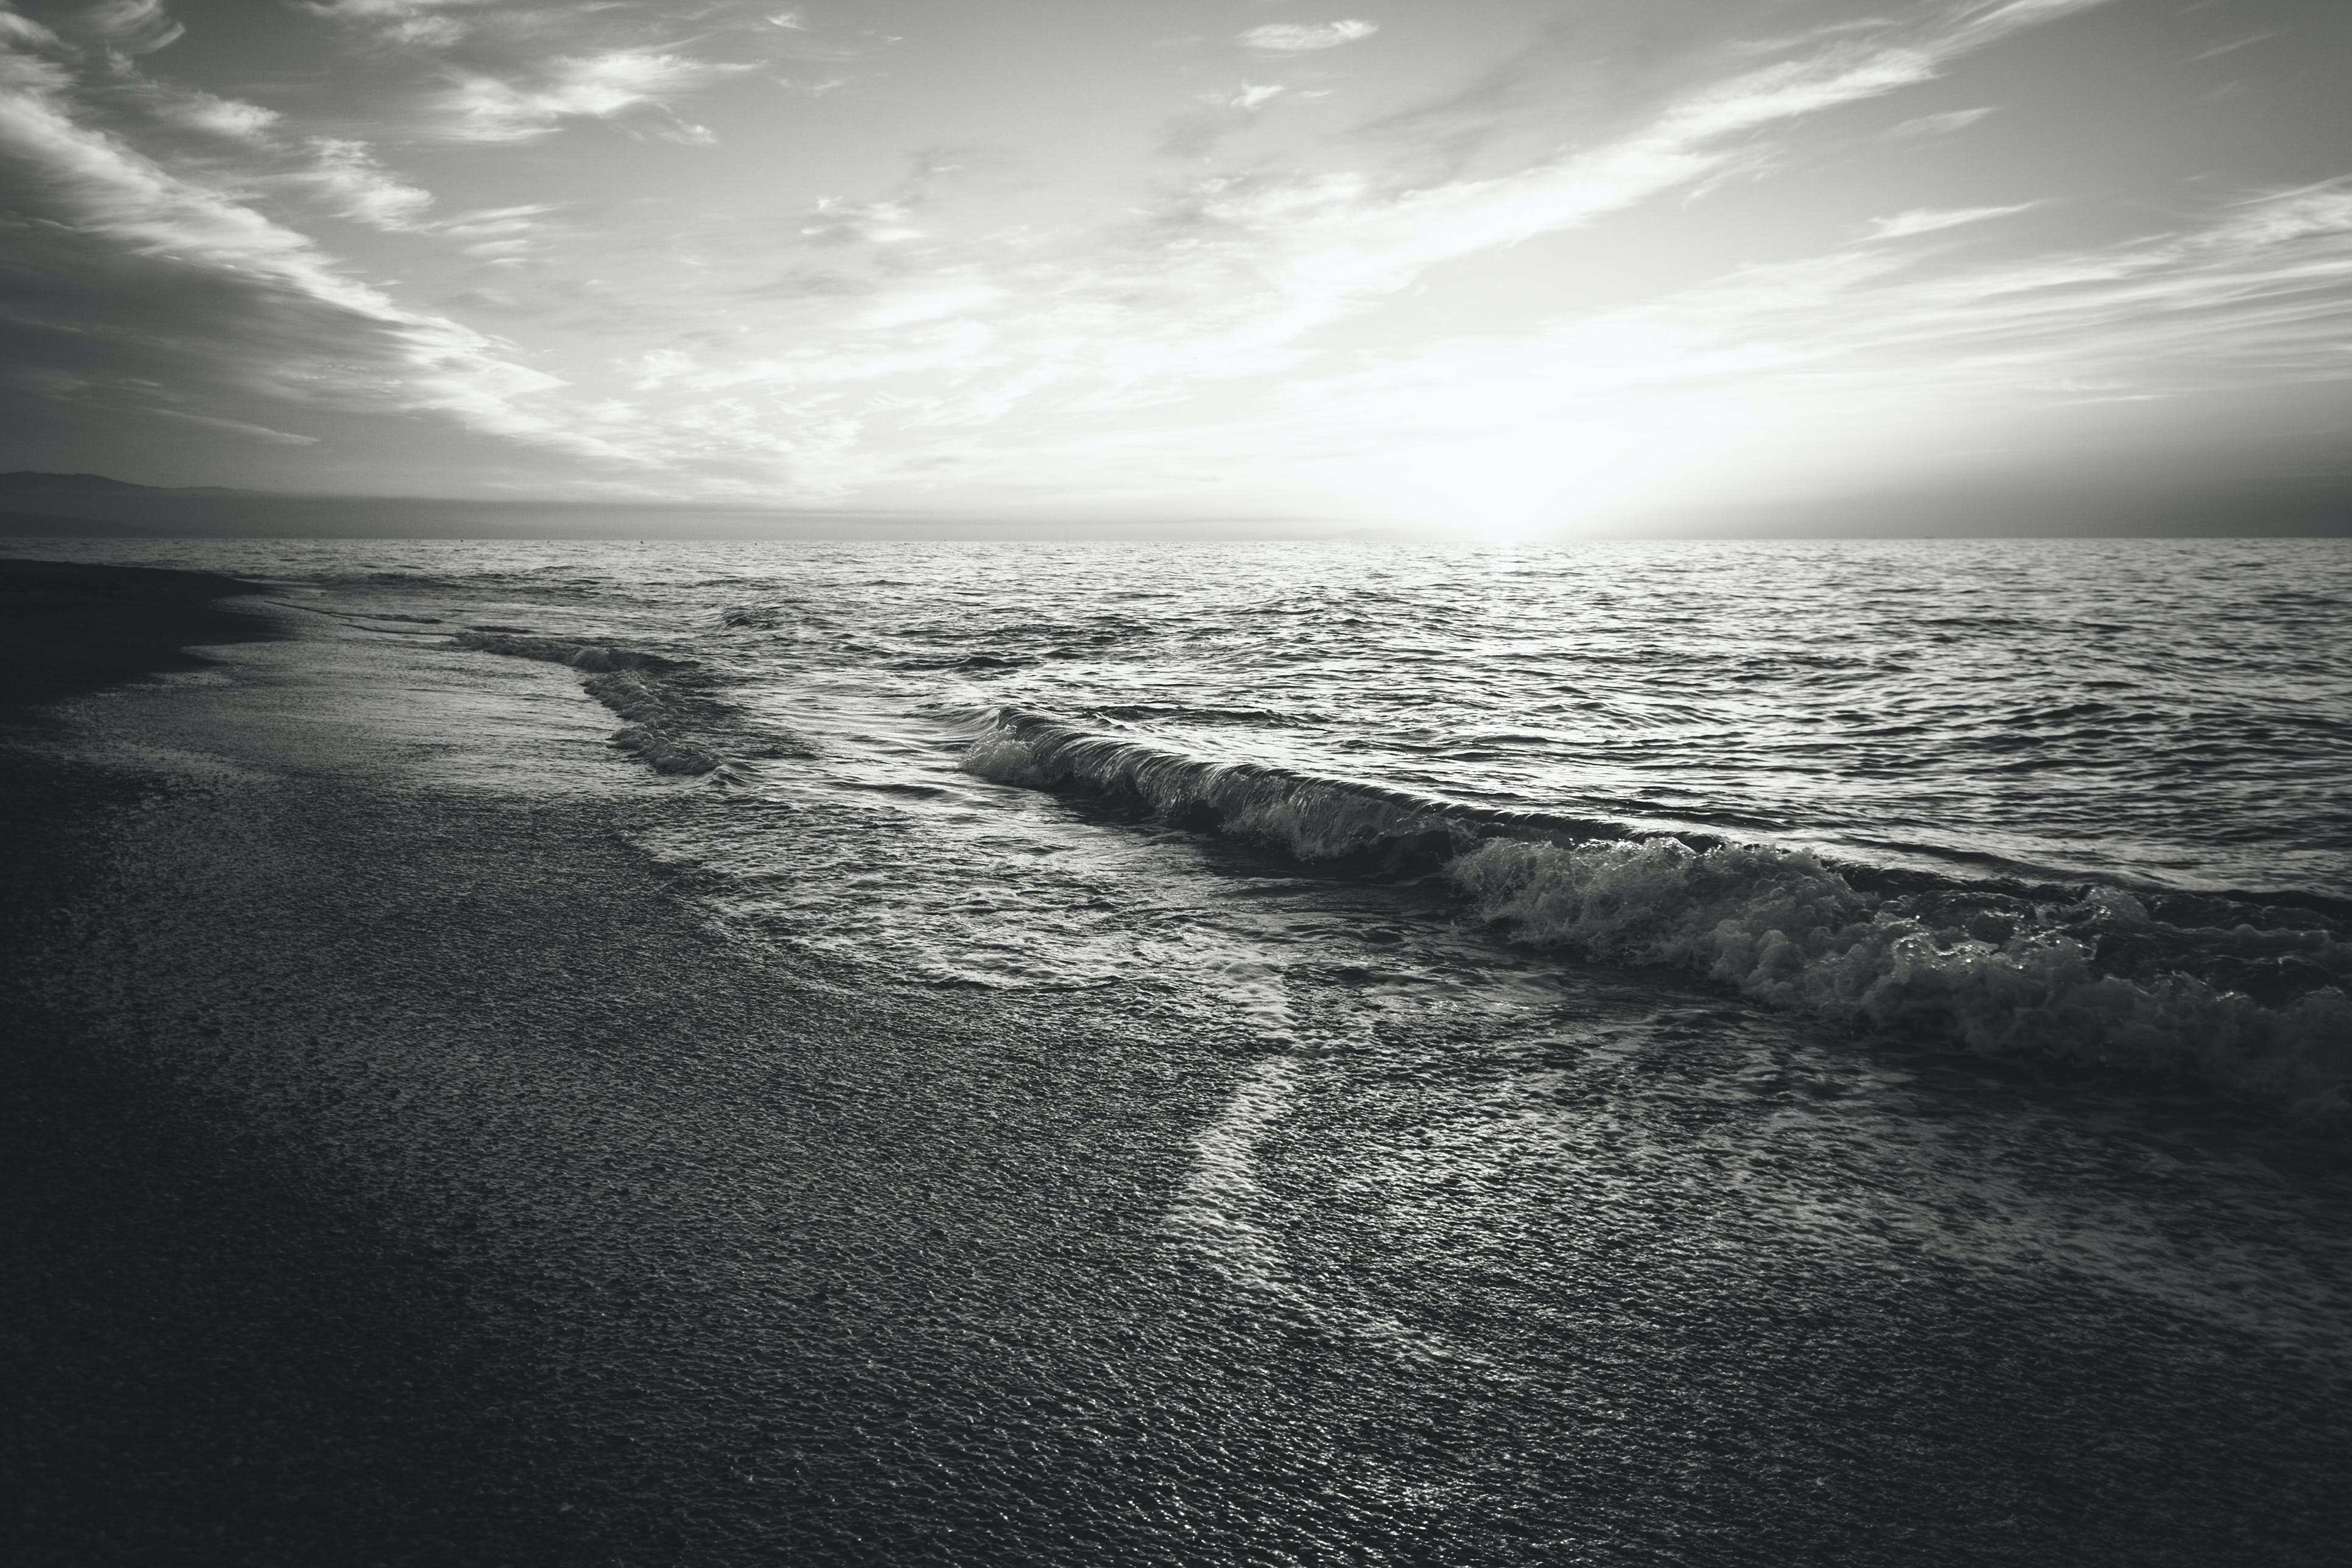 Grayscale Photo of Ocean